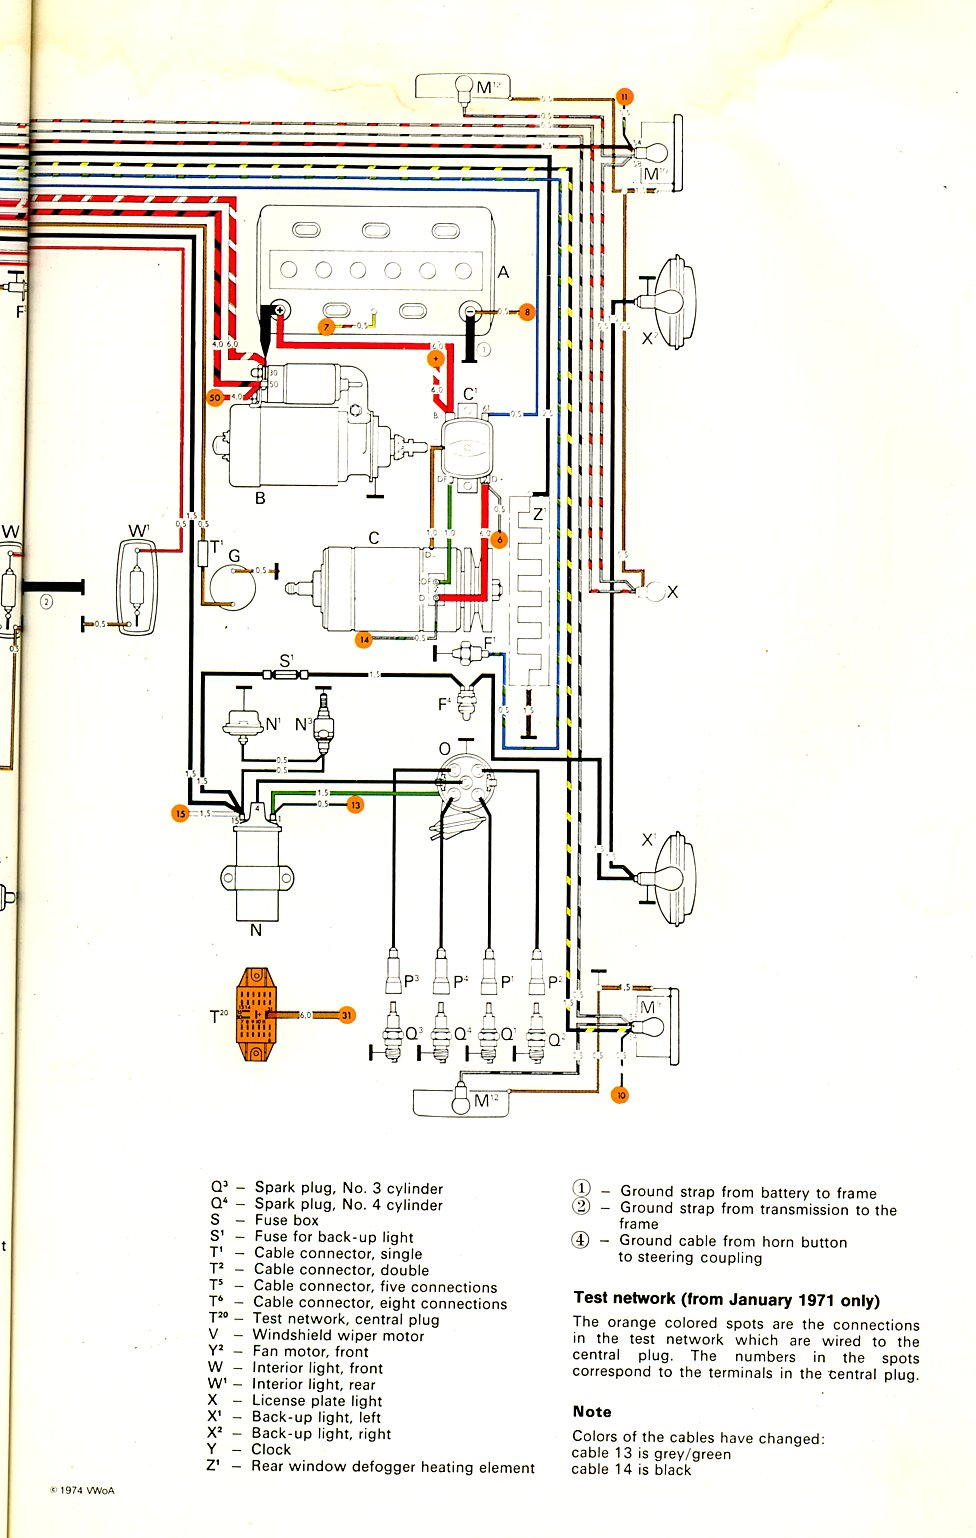 1971 bus wiring diagram thegoldenbug com Motorhome Battery Wiring Diagram